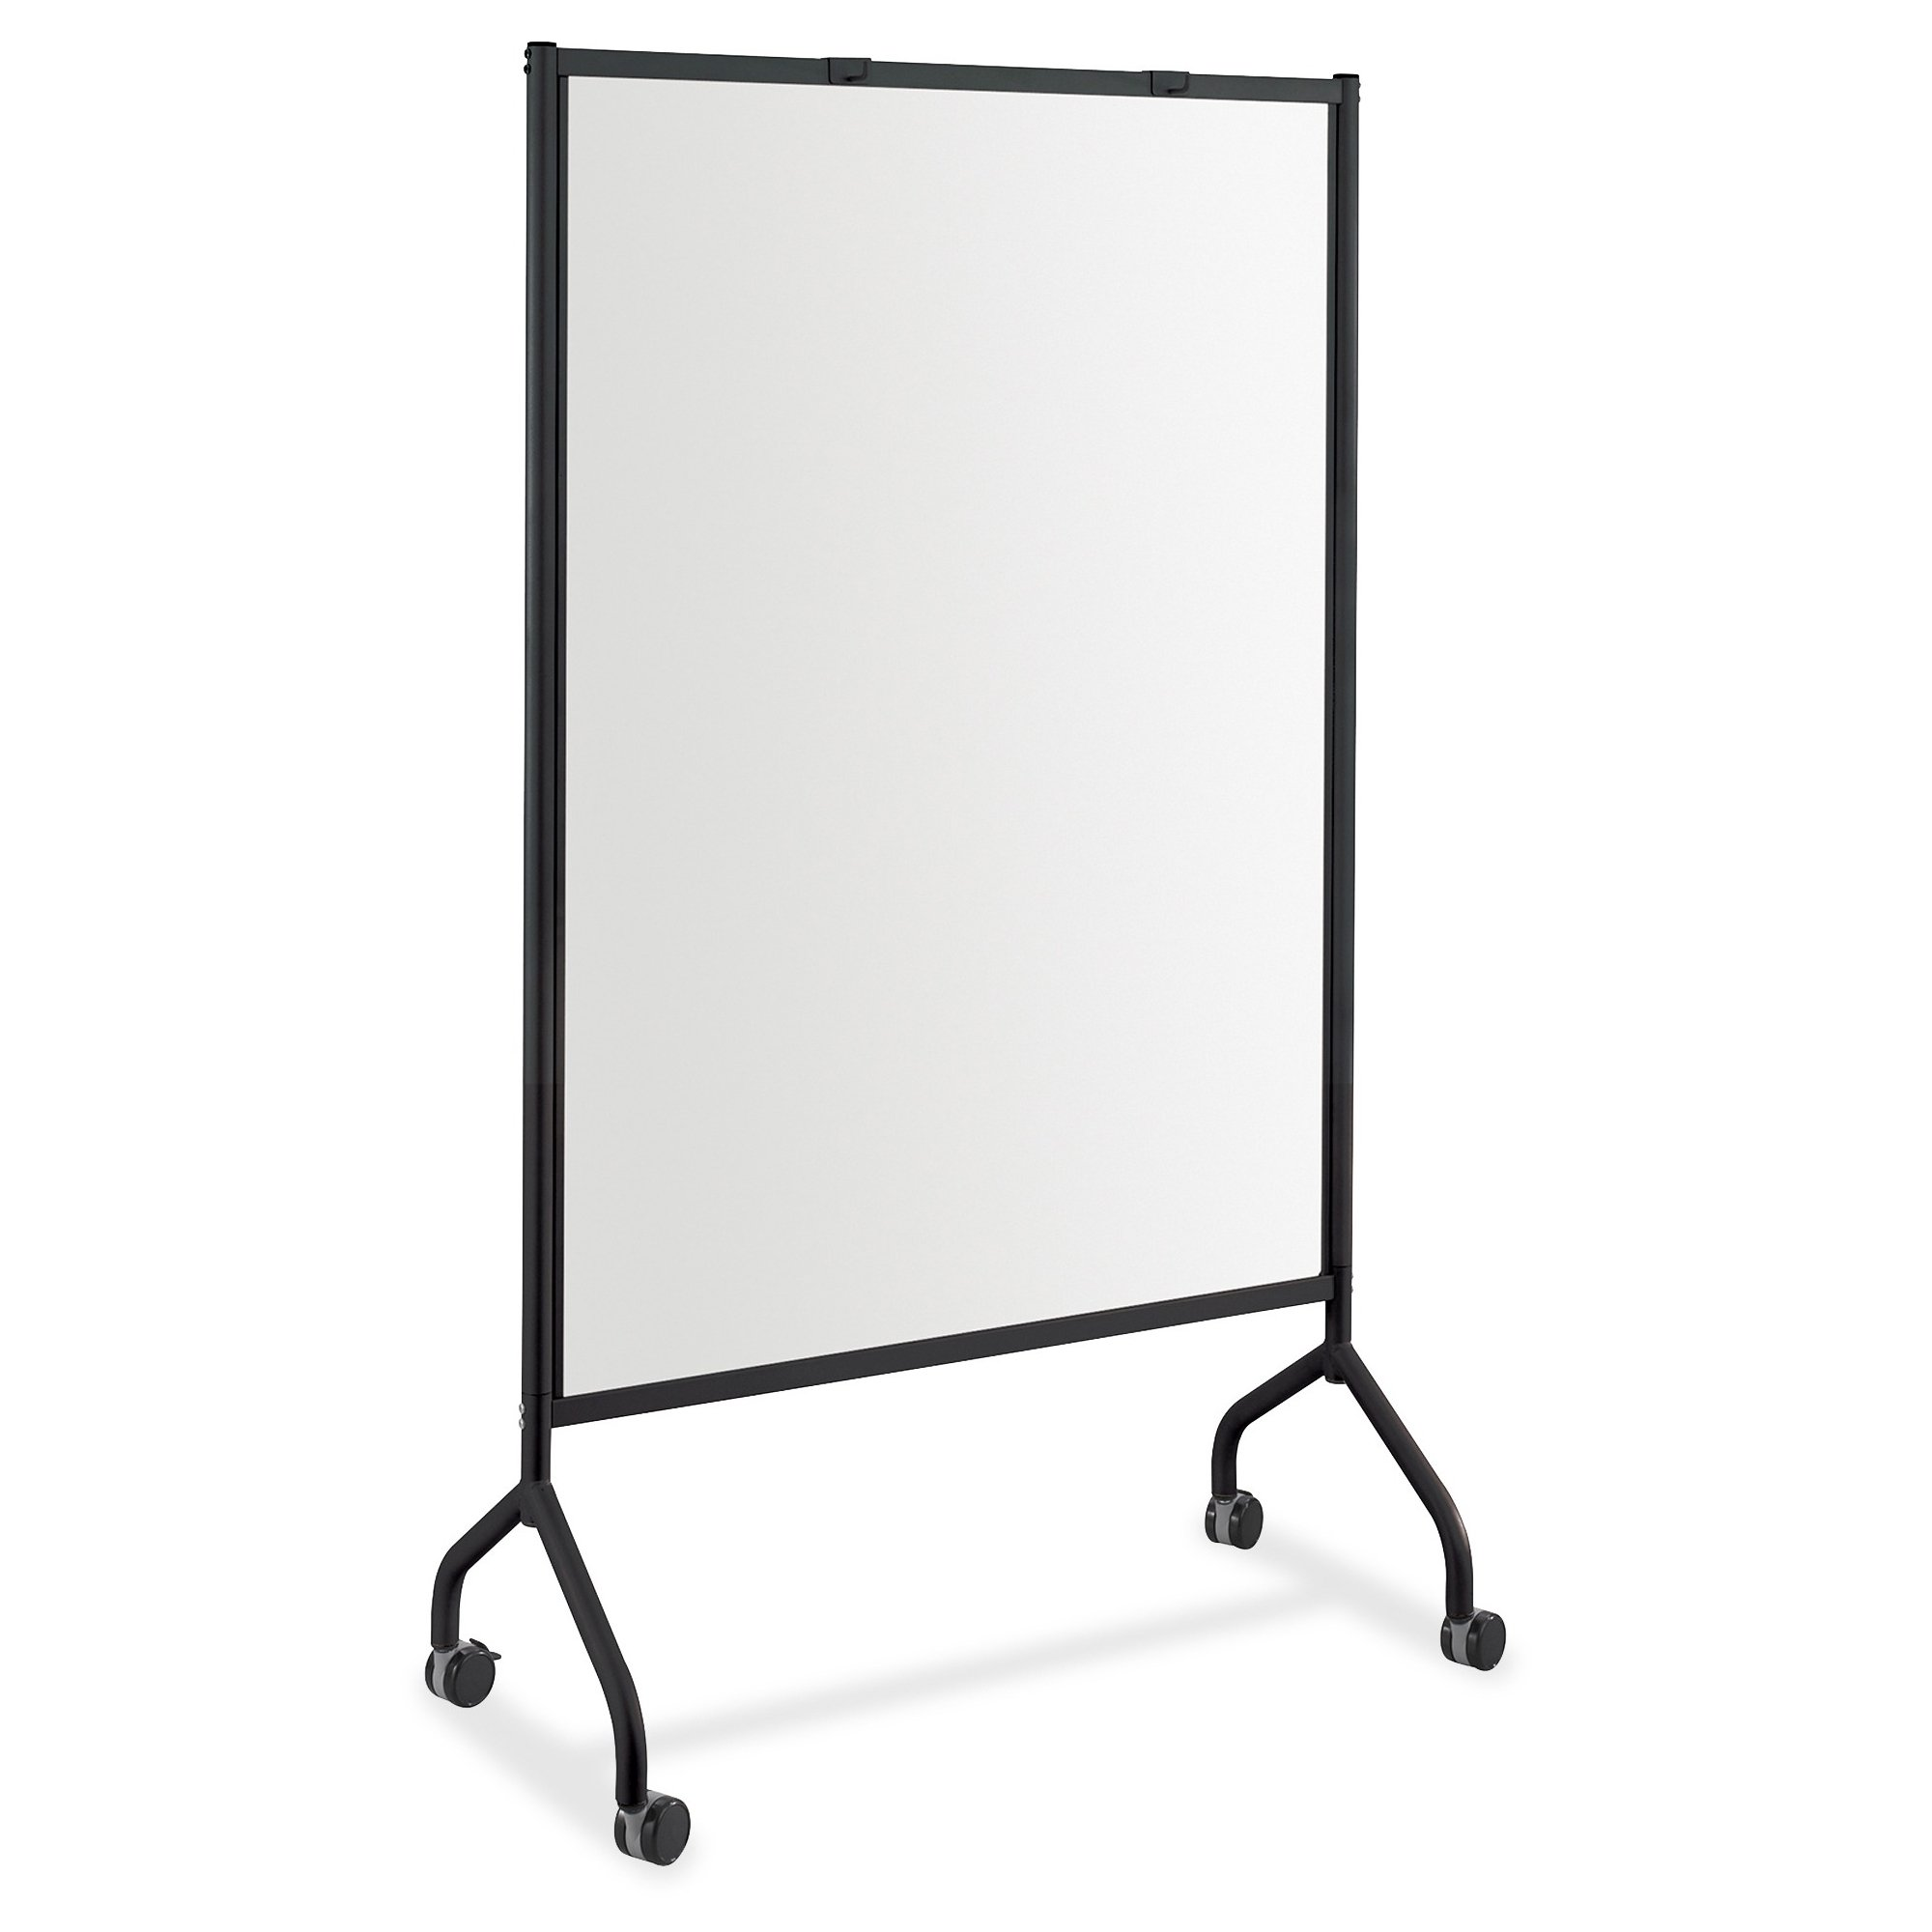 Safco Products 8511BL Impromptu Full Whiteboard Screen, 42''W x 21 1/2''D x 72''H, Black